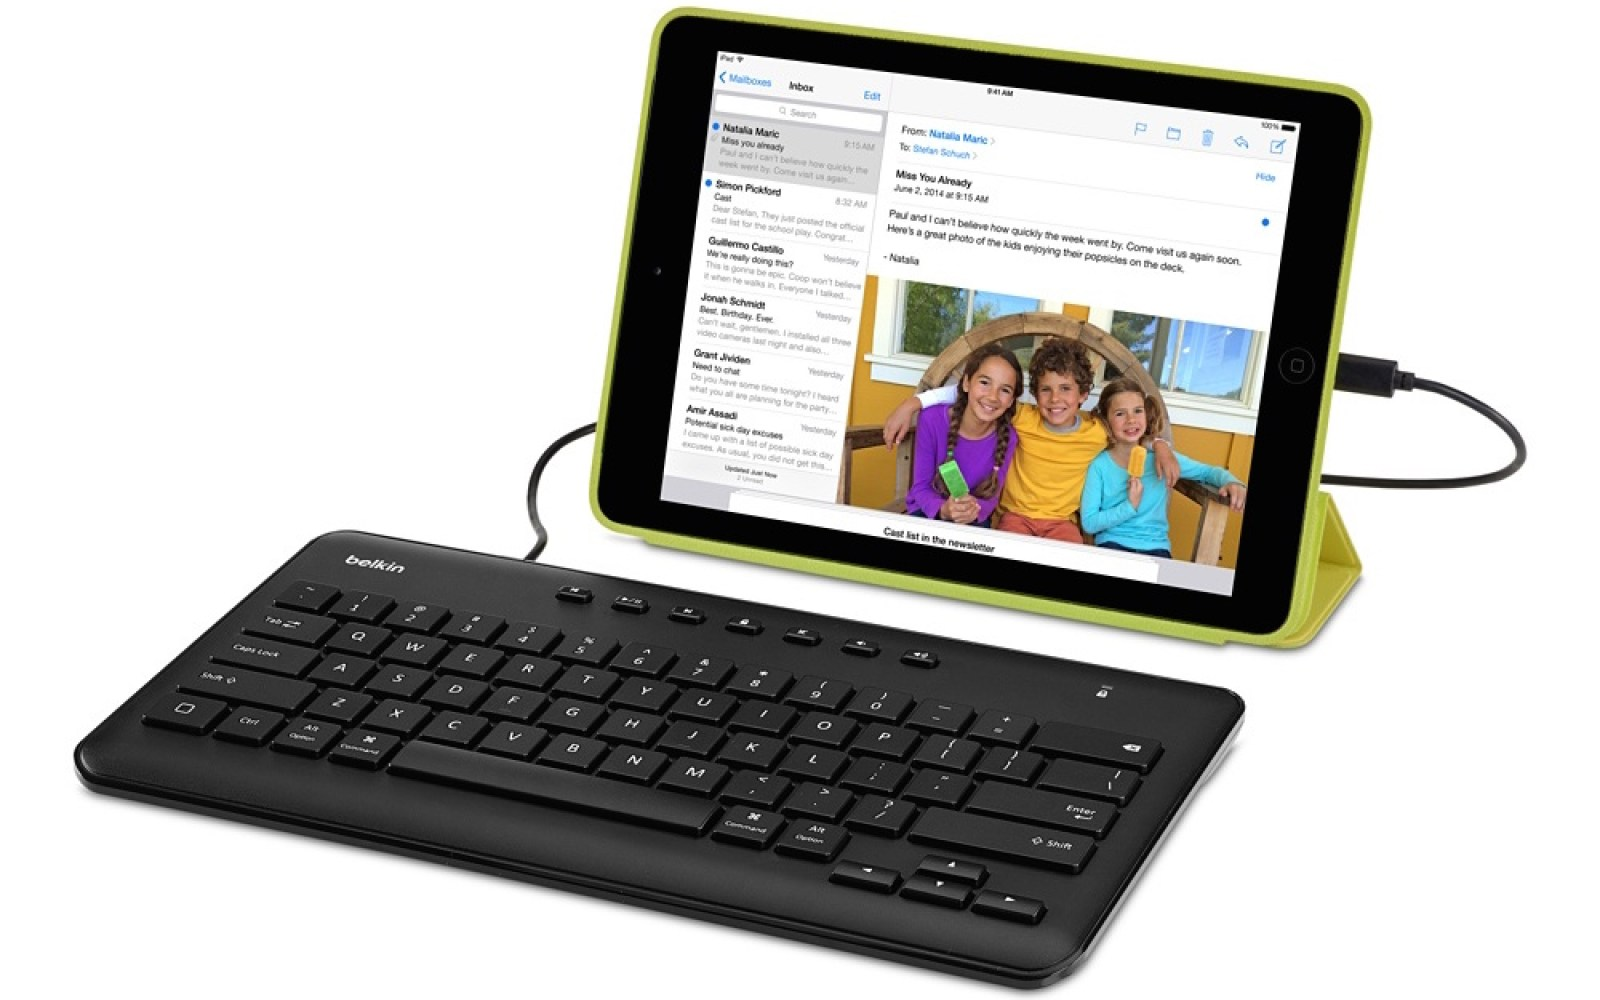 Belkin's MFi Lightning Keyboard for iPad doesn't require batteries and is on sale for $40 shipped (Reg. $60)